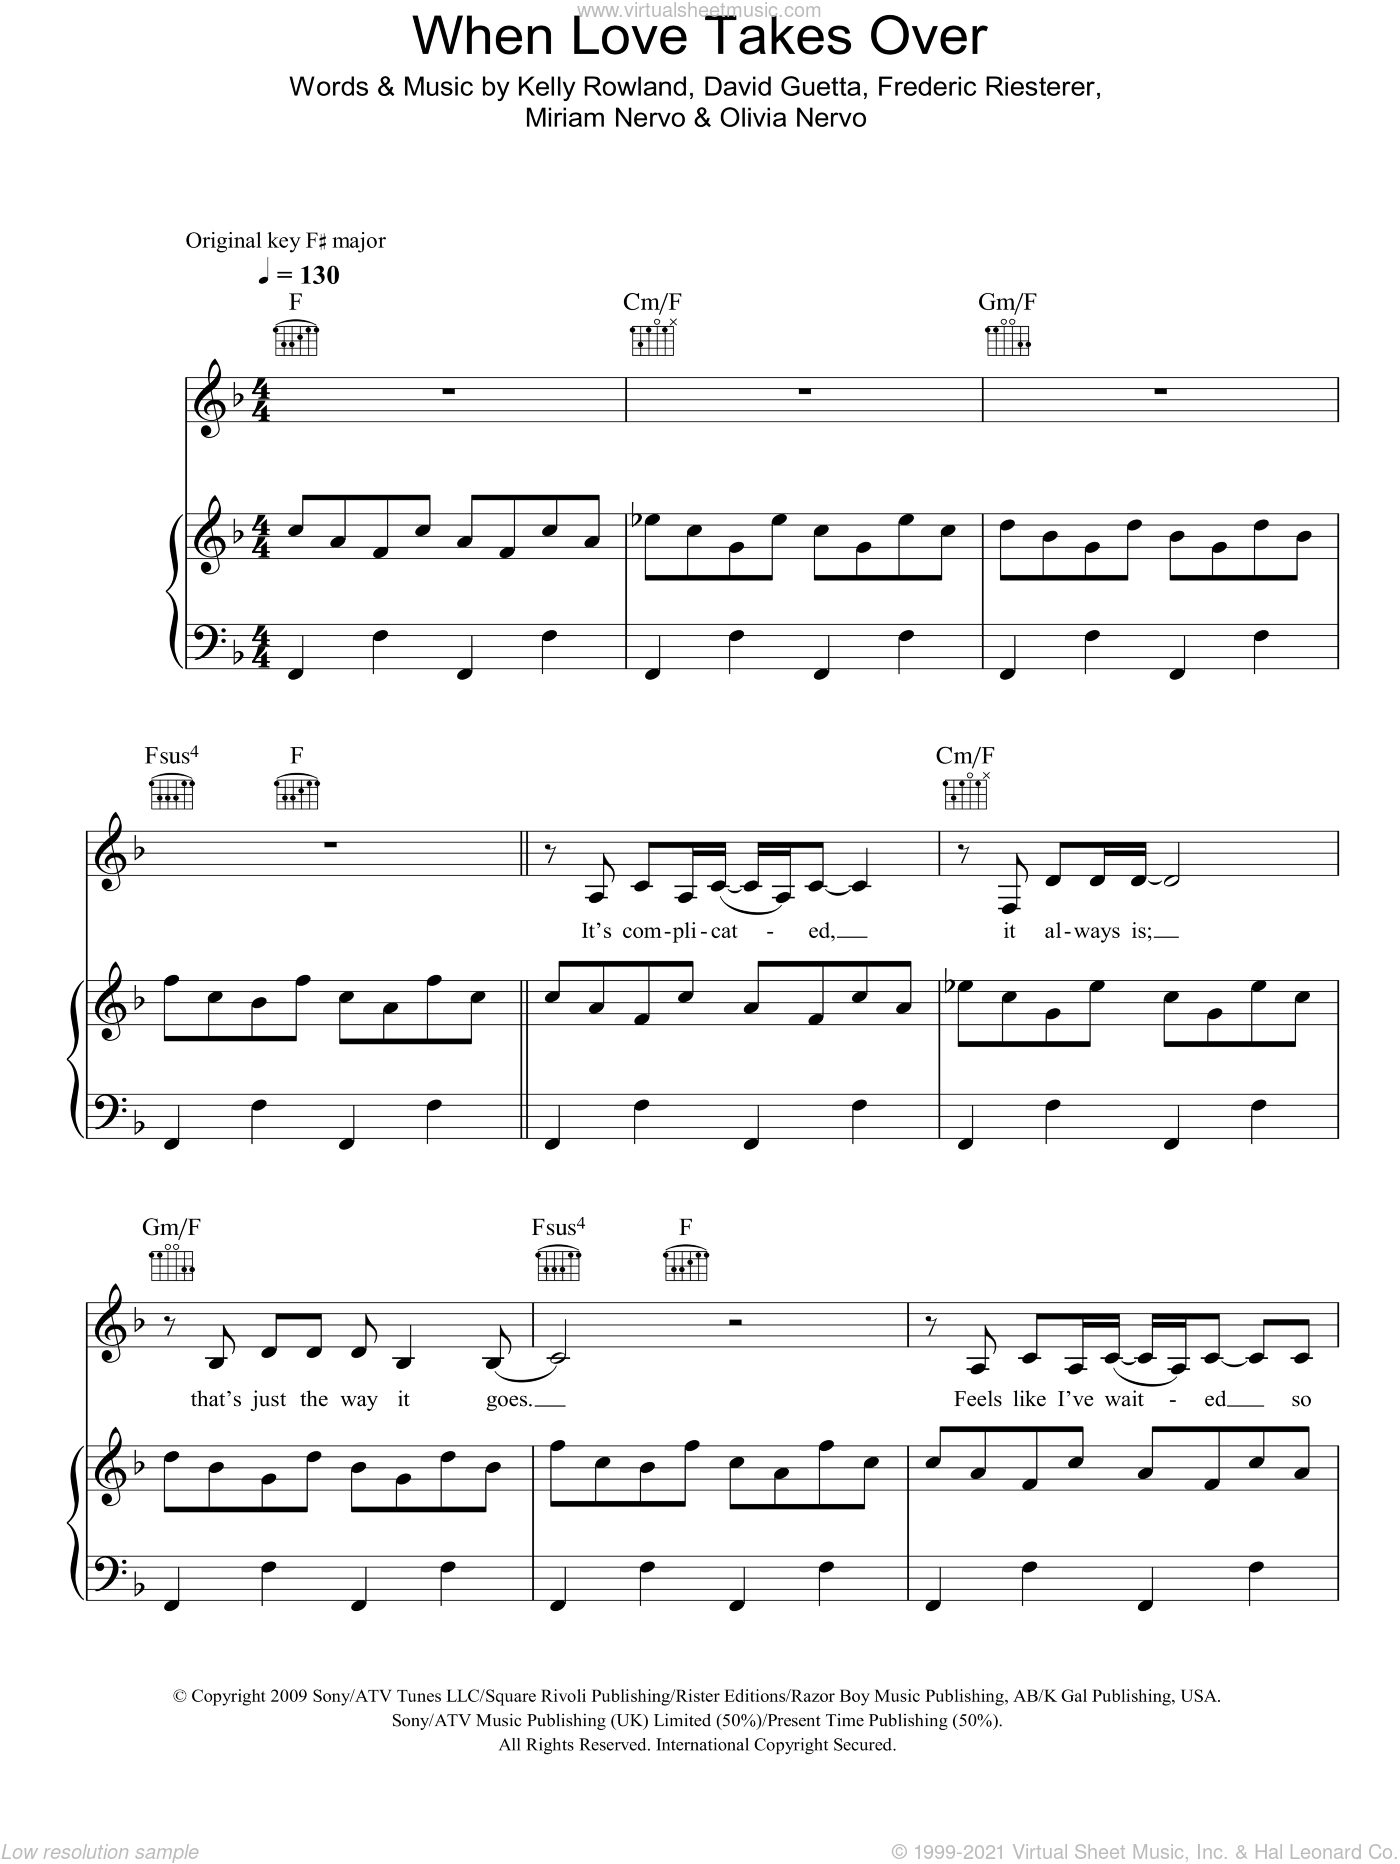 When Love Takes Over sheet music for voice, piano or guitar by Olivia Nervo